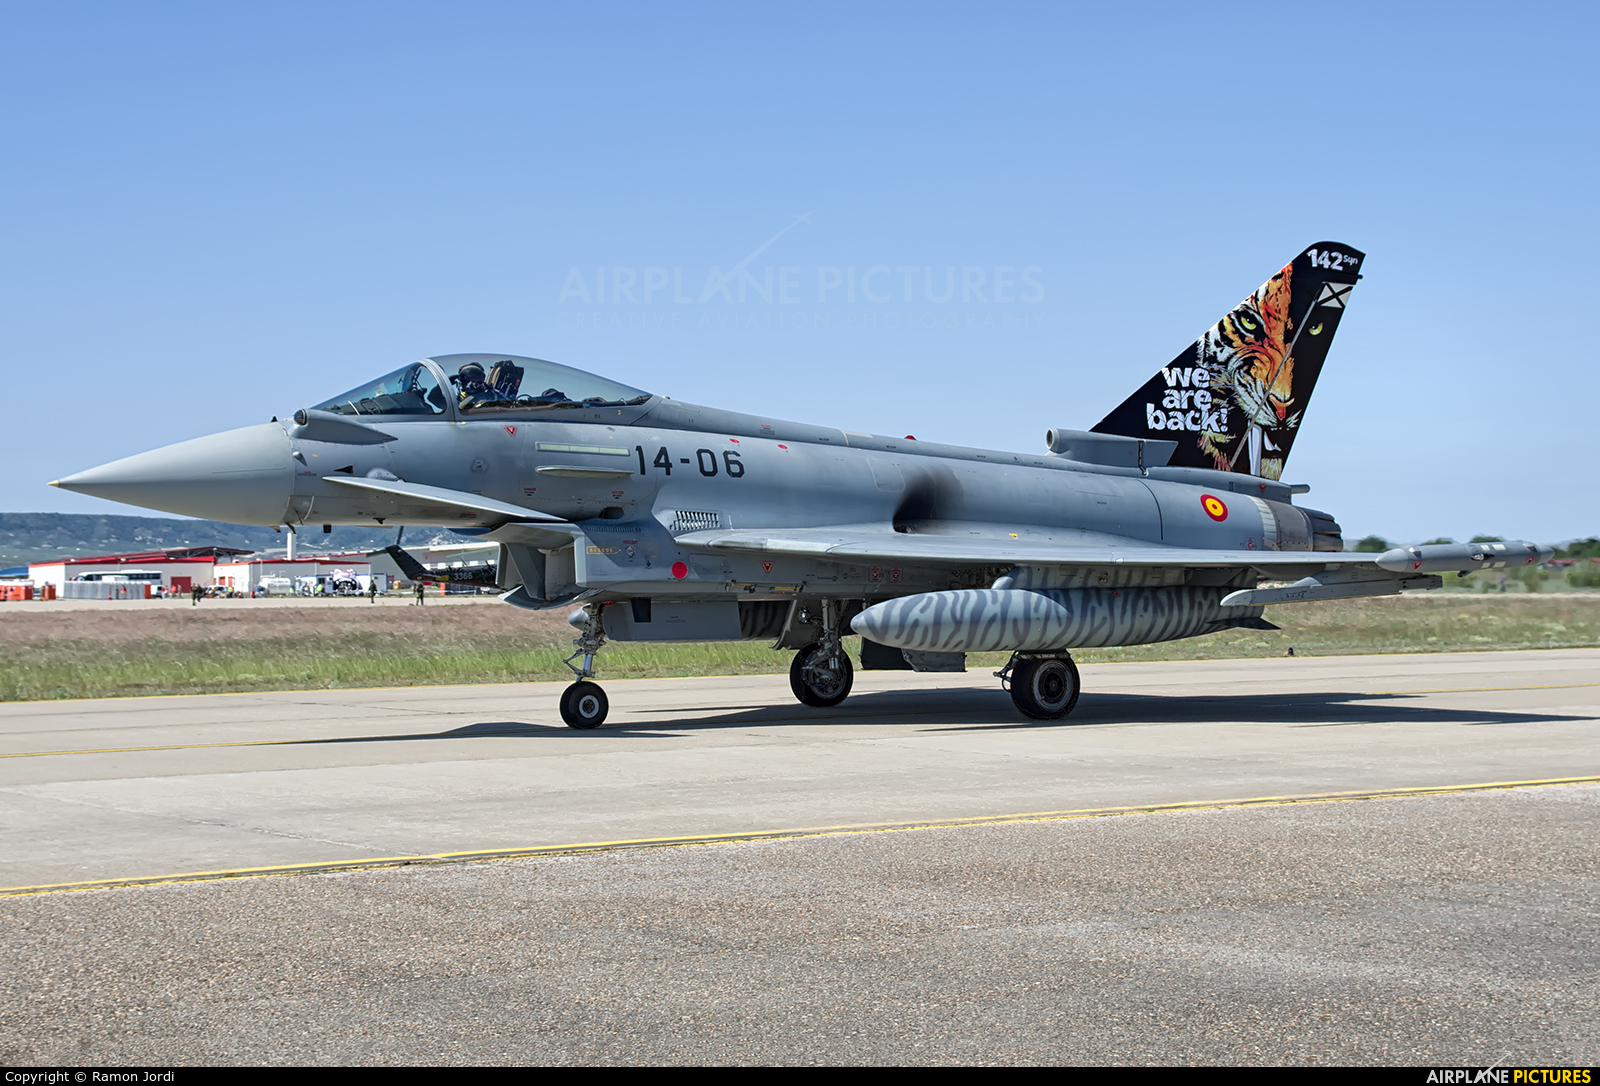 Spain - Air Force C.16-39 aircraft at Zaragoza